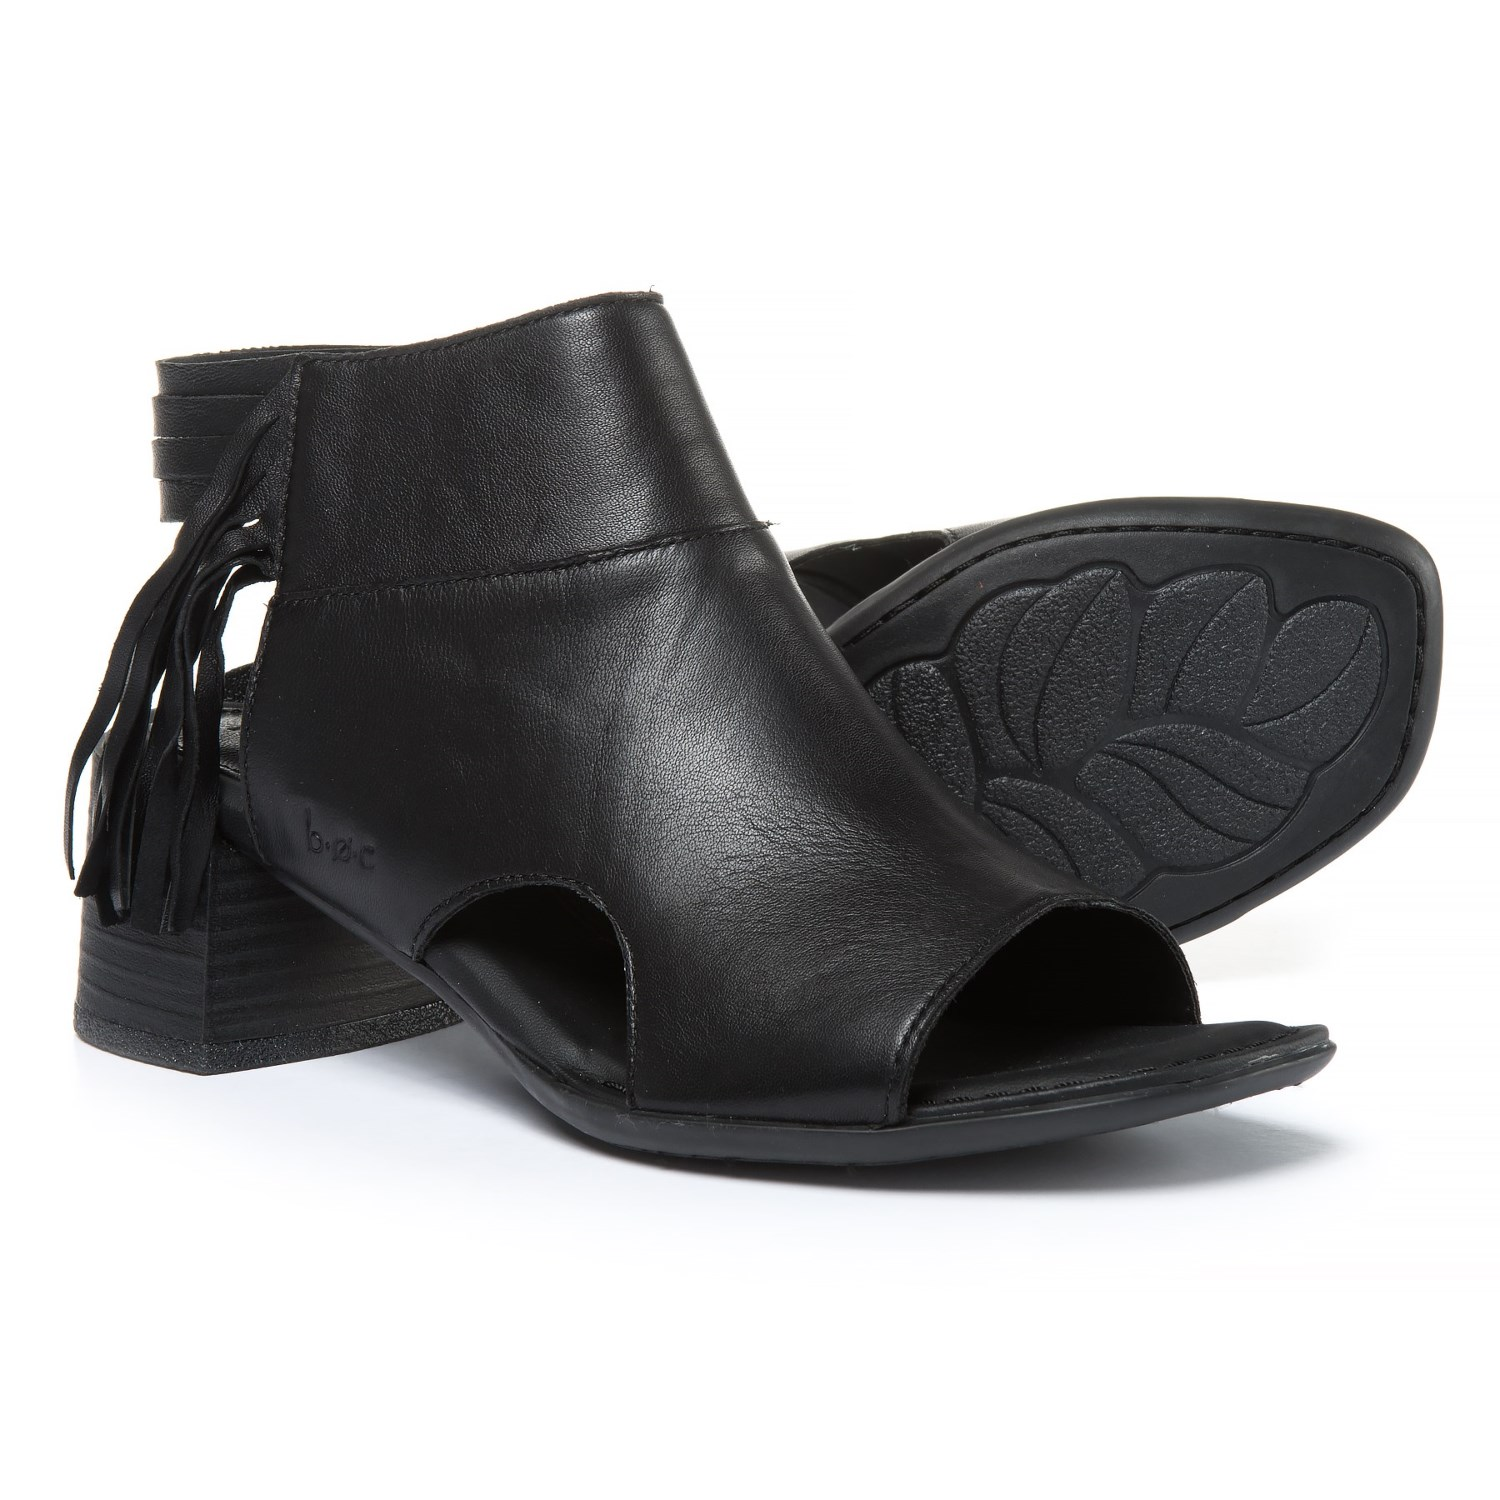 b.o.c Verona Sandals - Leather (For Women)